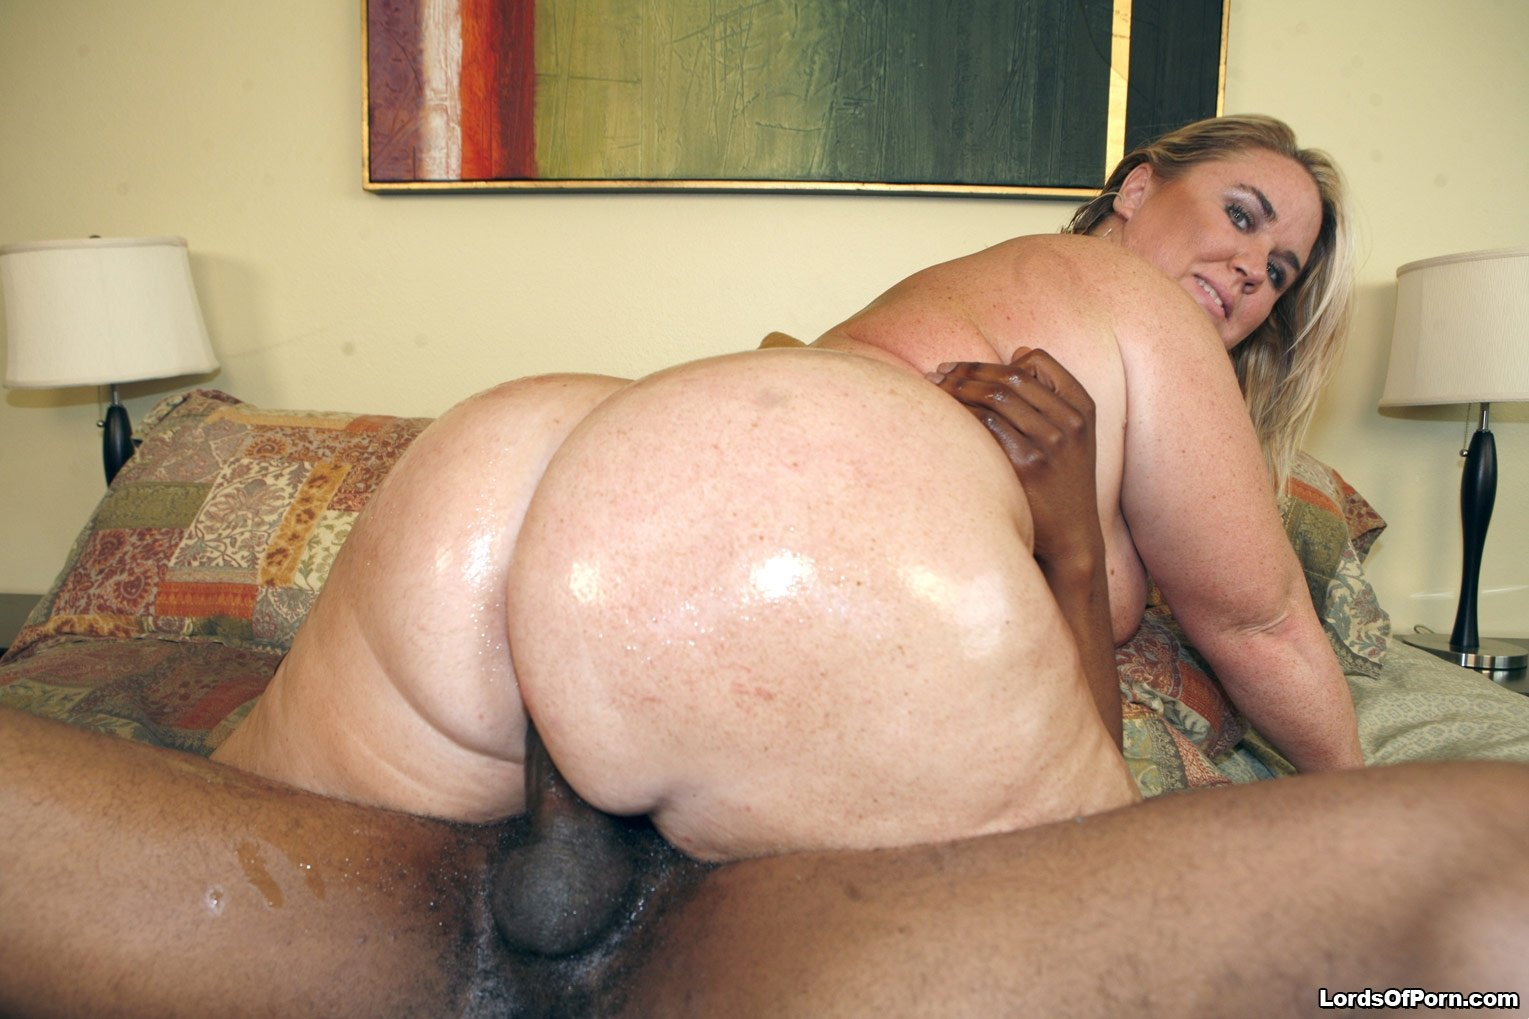 Wife get fucked when husband look at streaptease